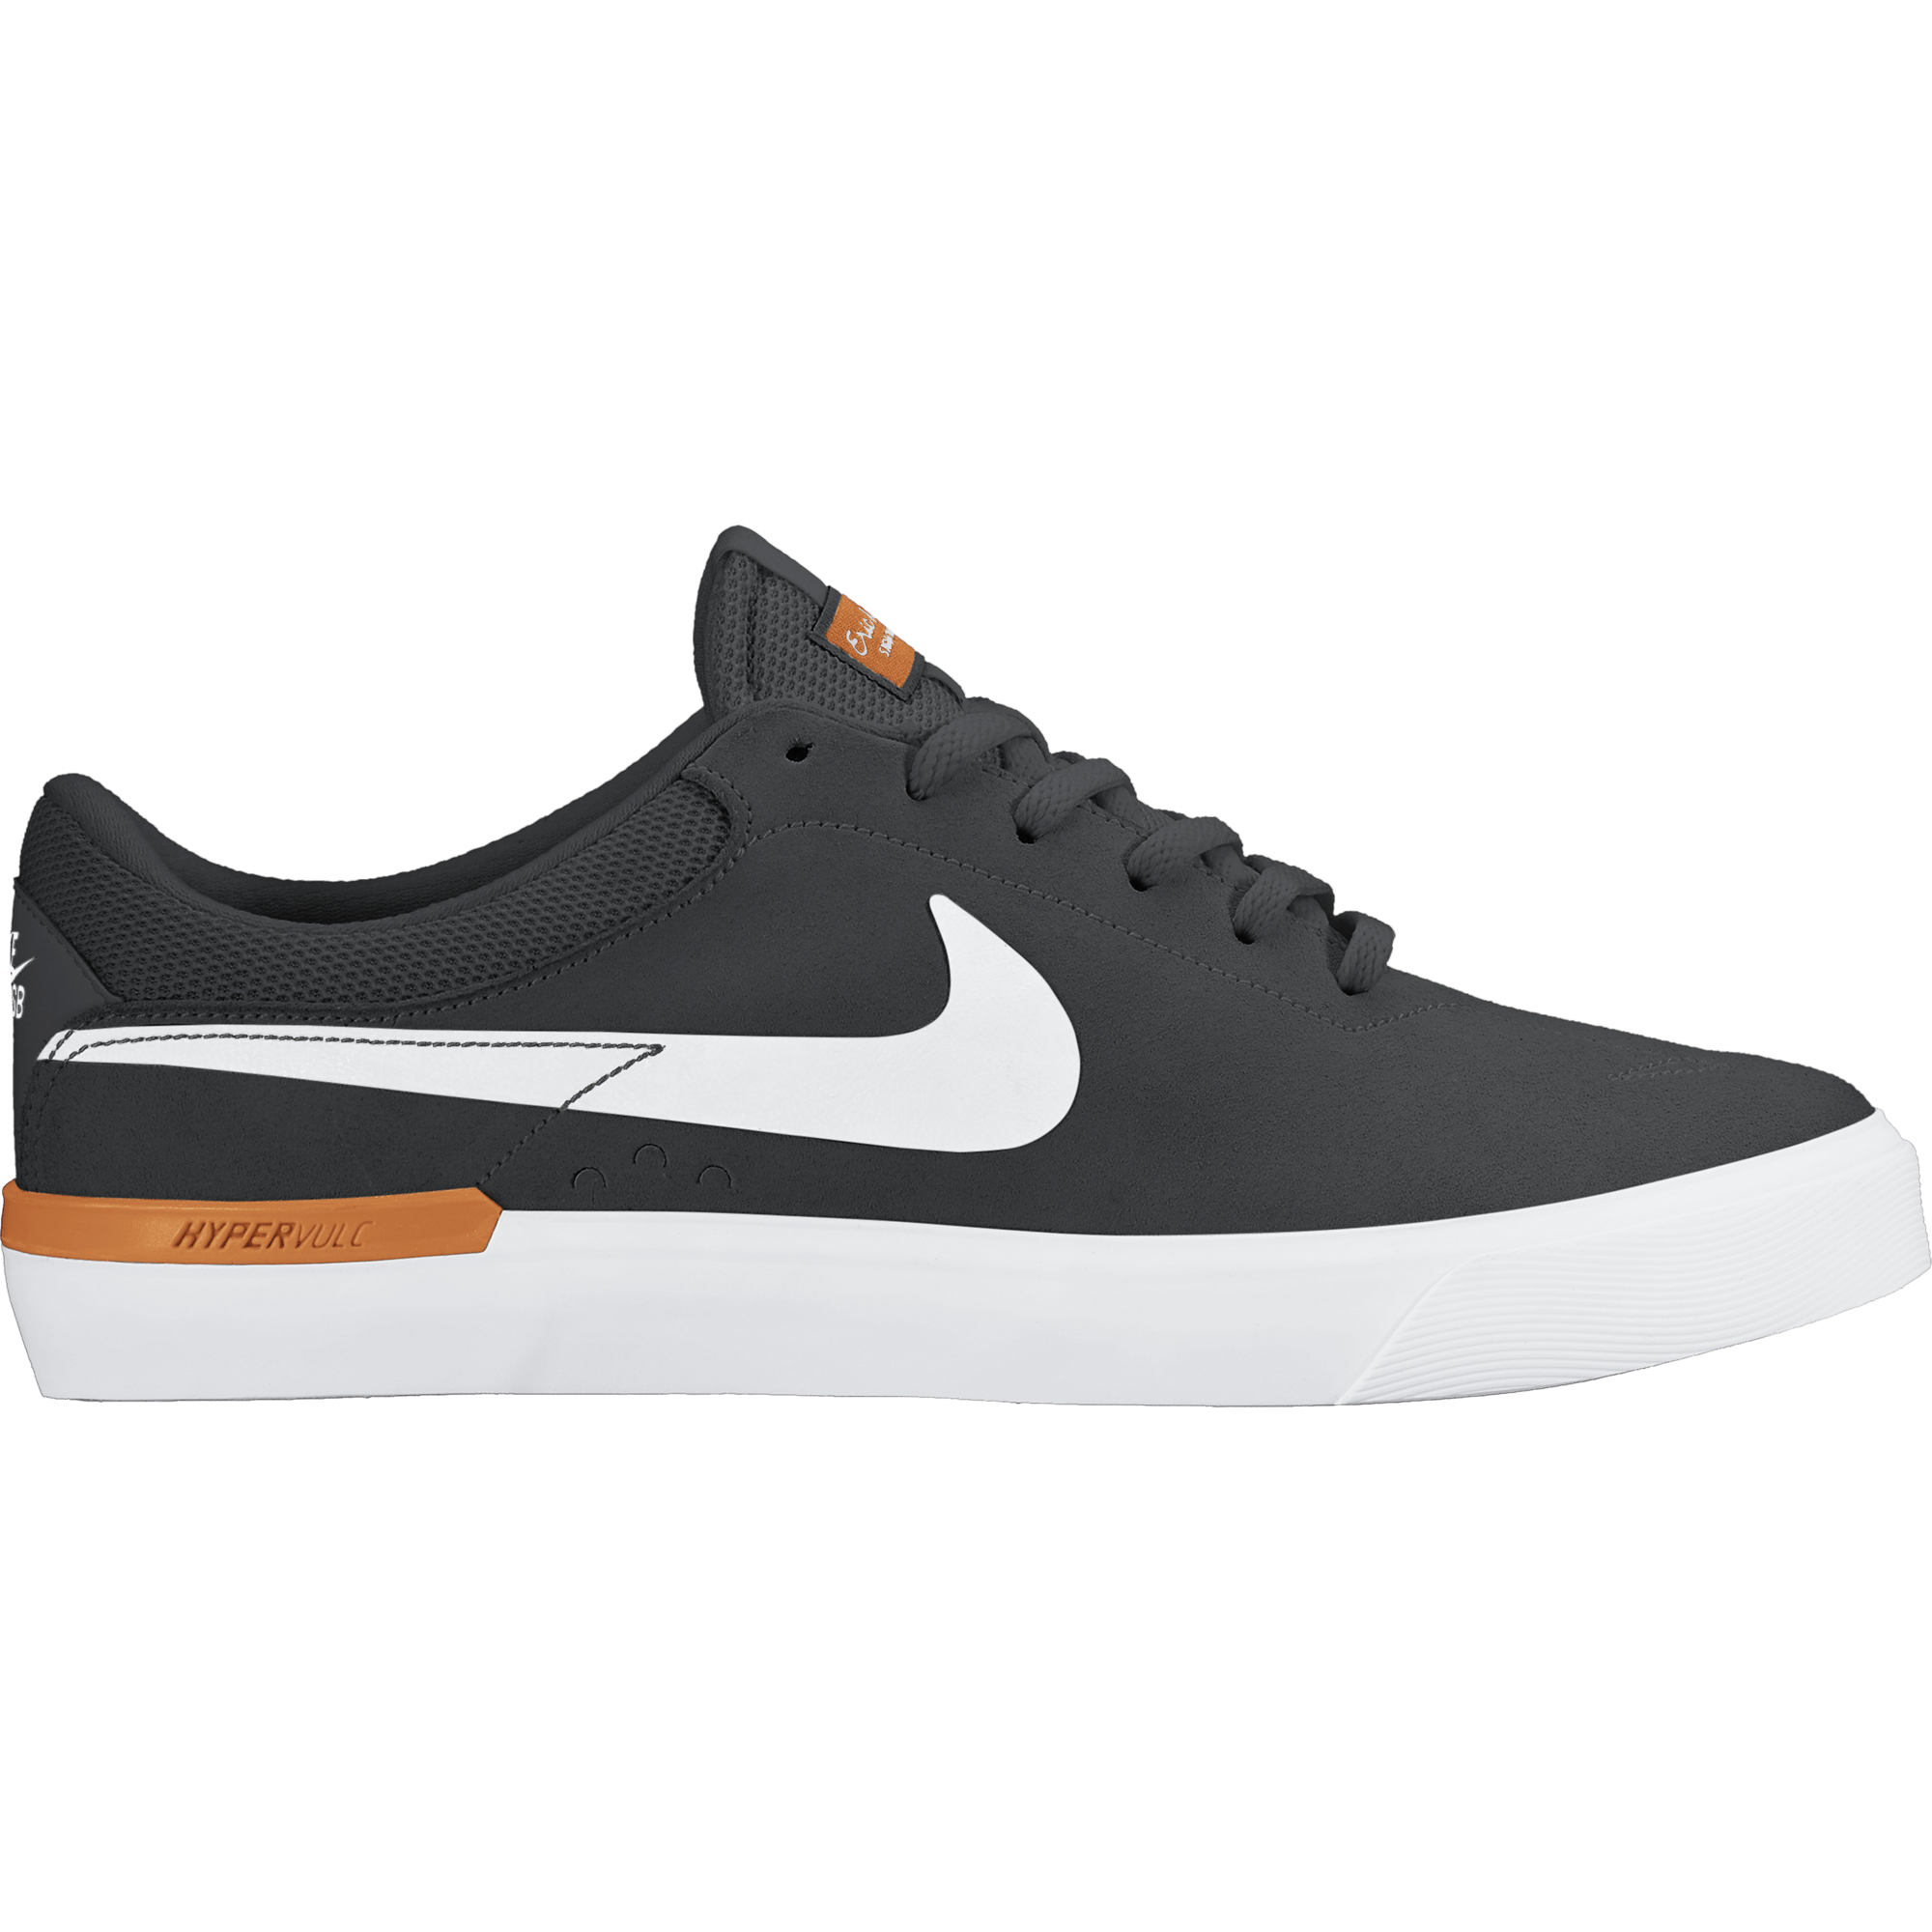 Nike Sb Koston Hypervulc Shoe Anthracite White